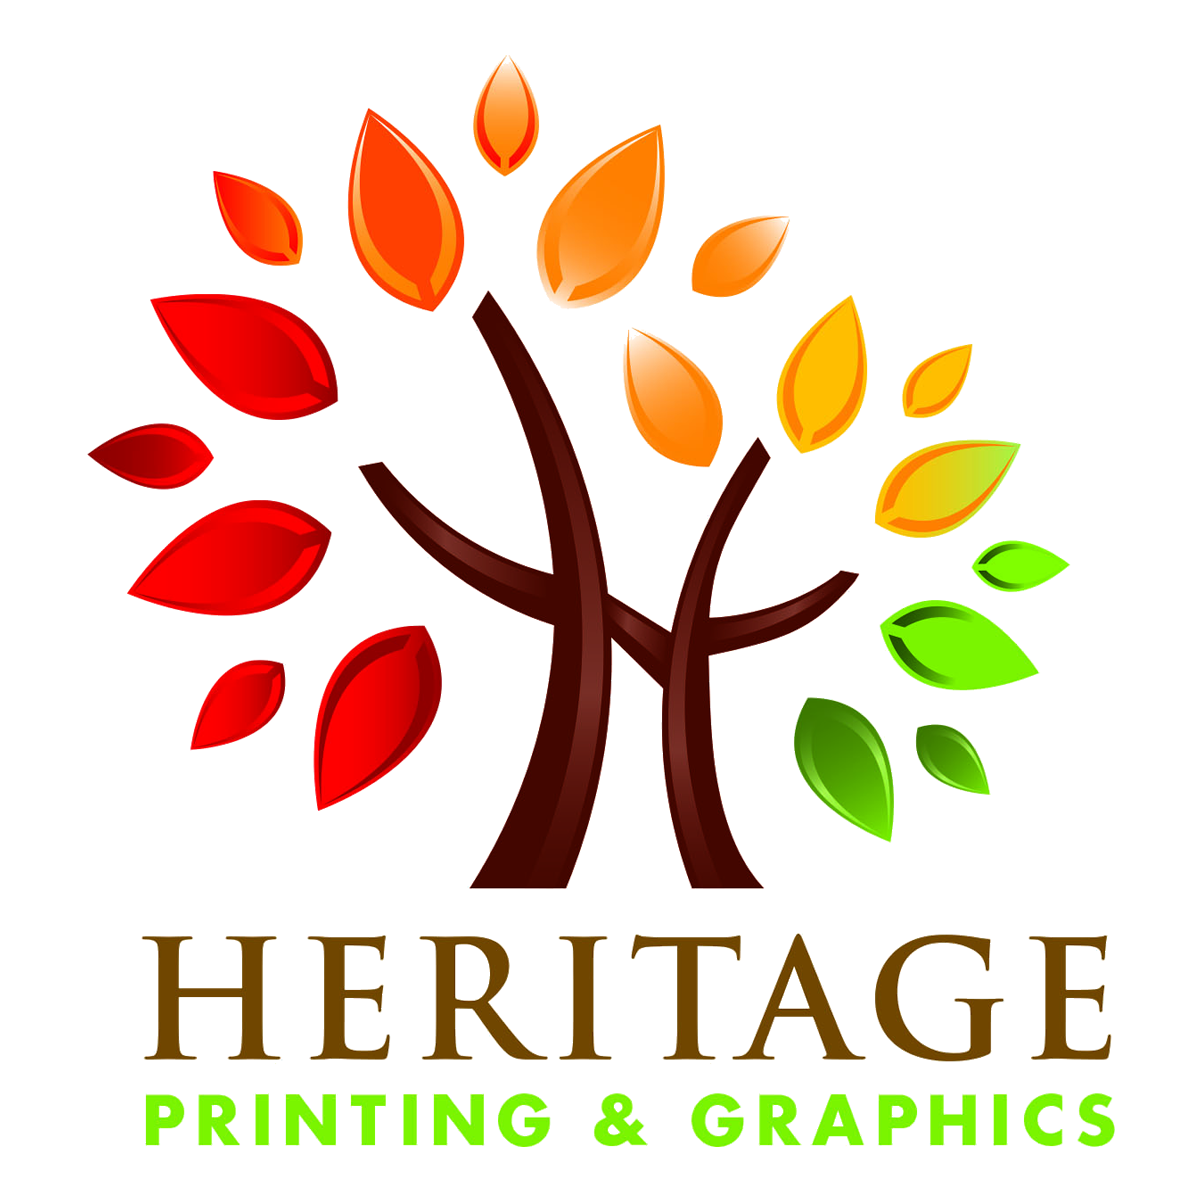 Heritage printing graphics waldorf maryland md for Business interiors by staples charlotte nc